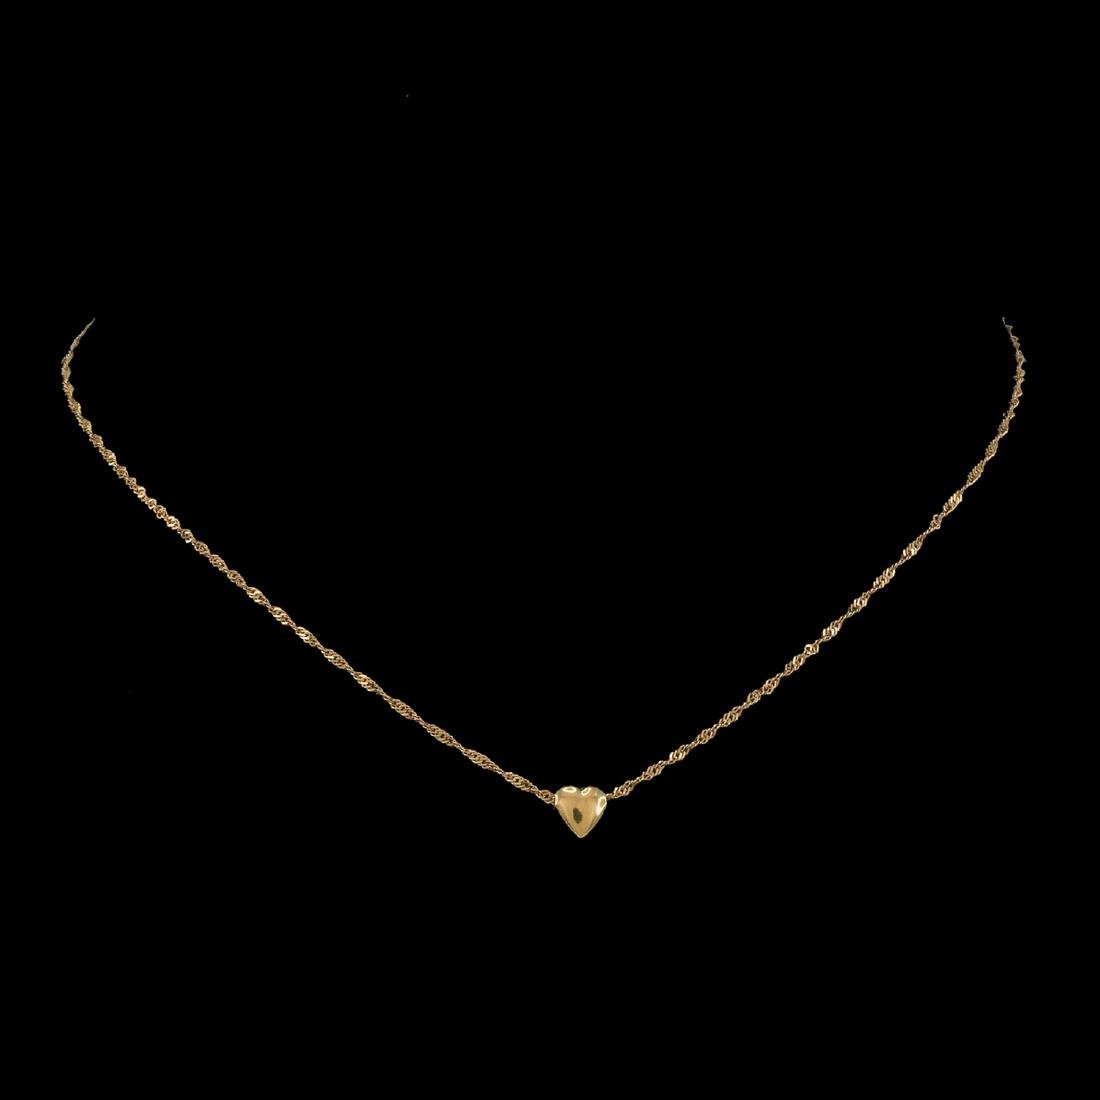 *Fine Jewelry 14KT Gold Singapore W Puffed Heart 1.4GM.